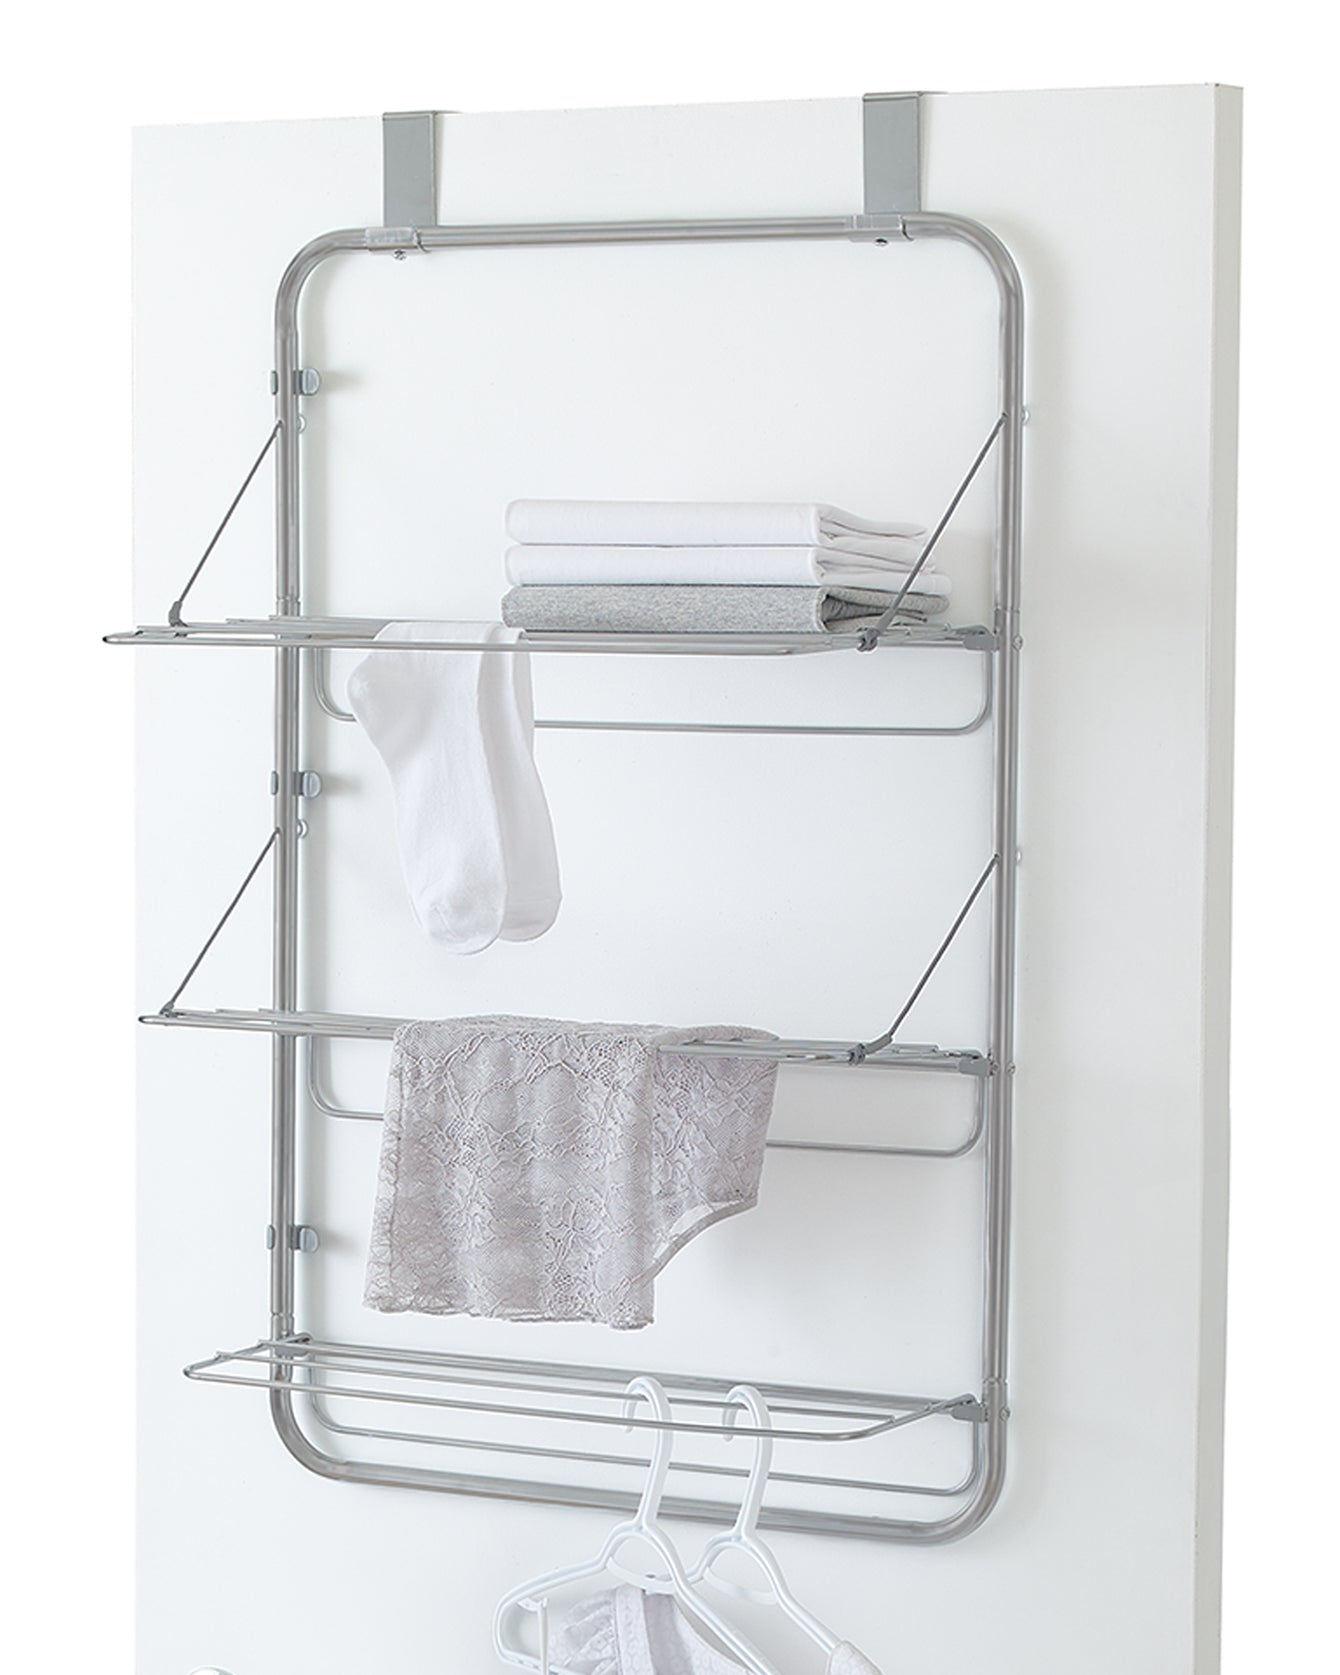 3 Tier Over the Door Drying Rack